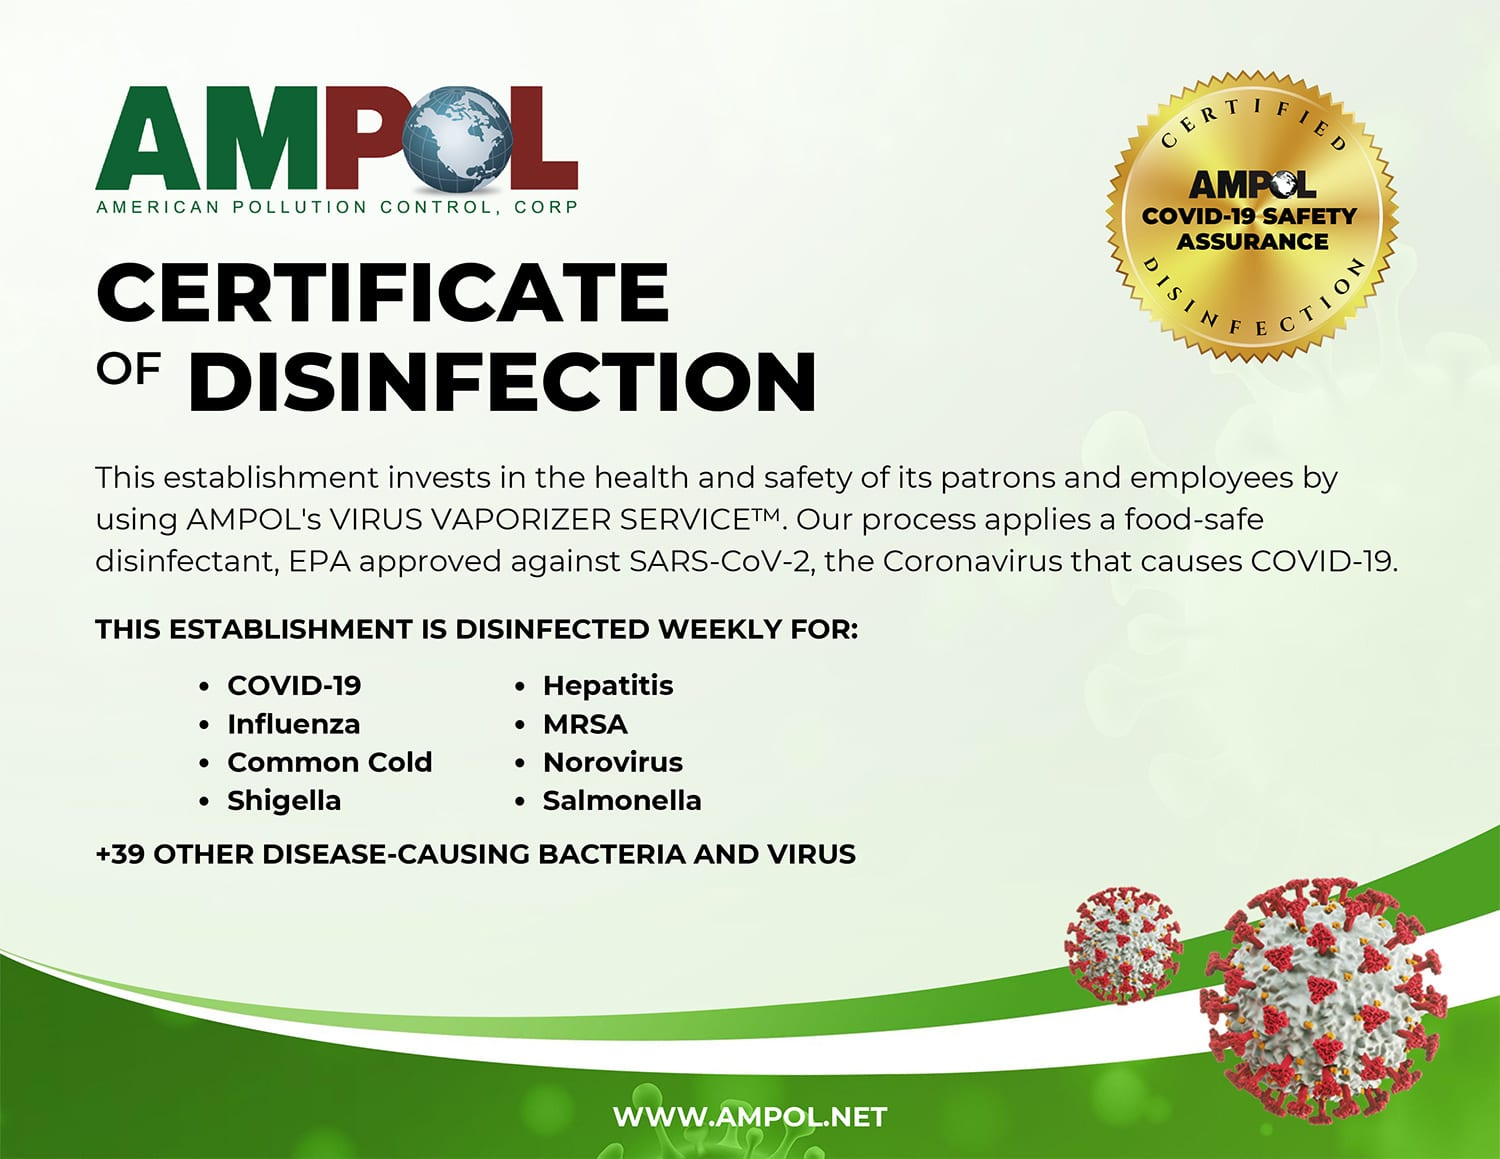 Ampol COVID19 Disinfection Certificate